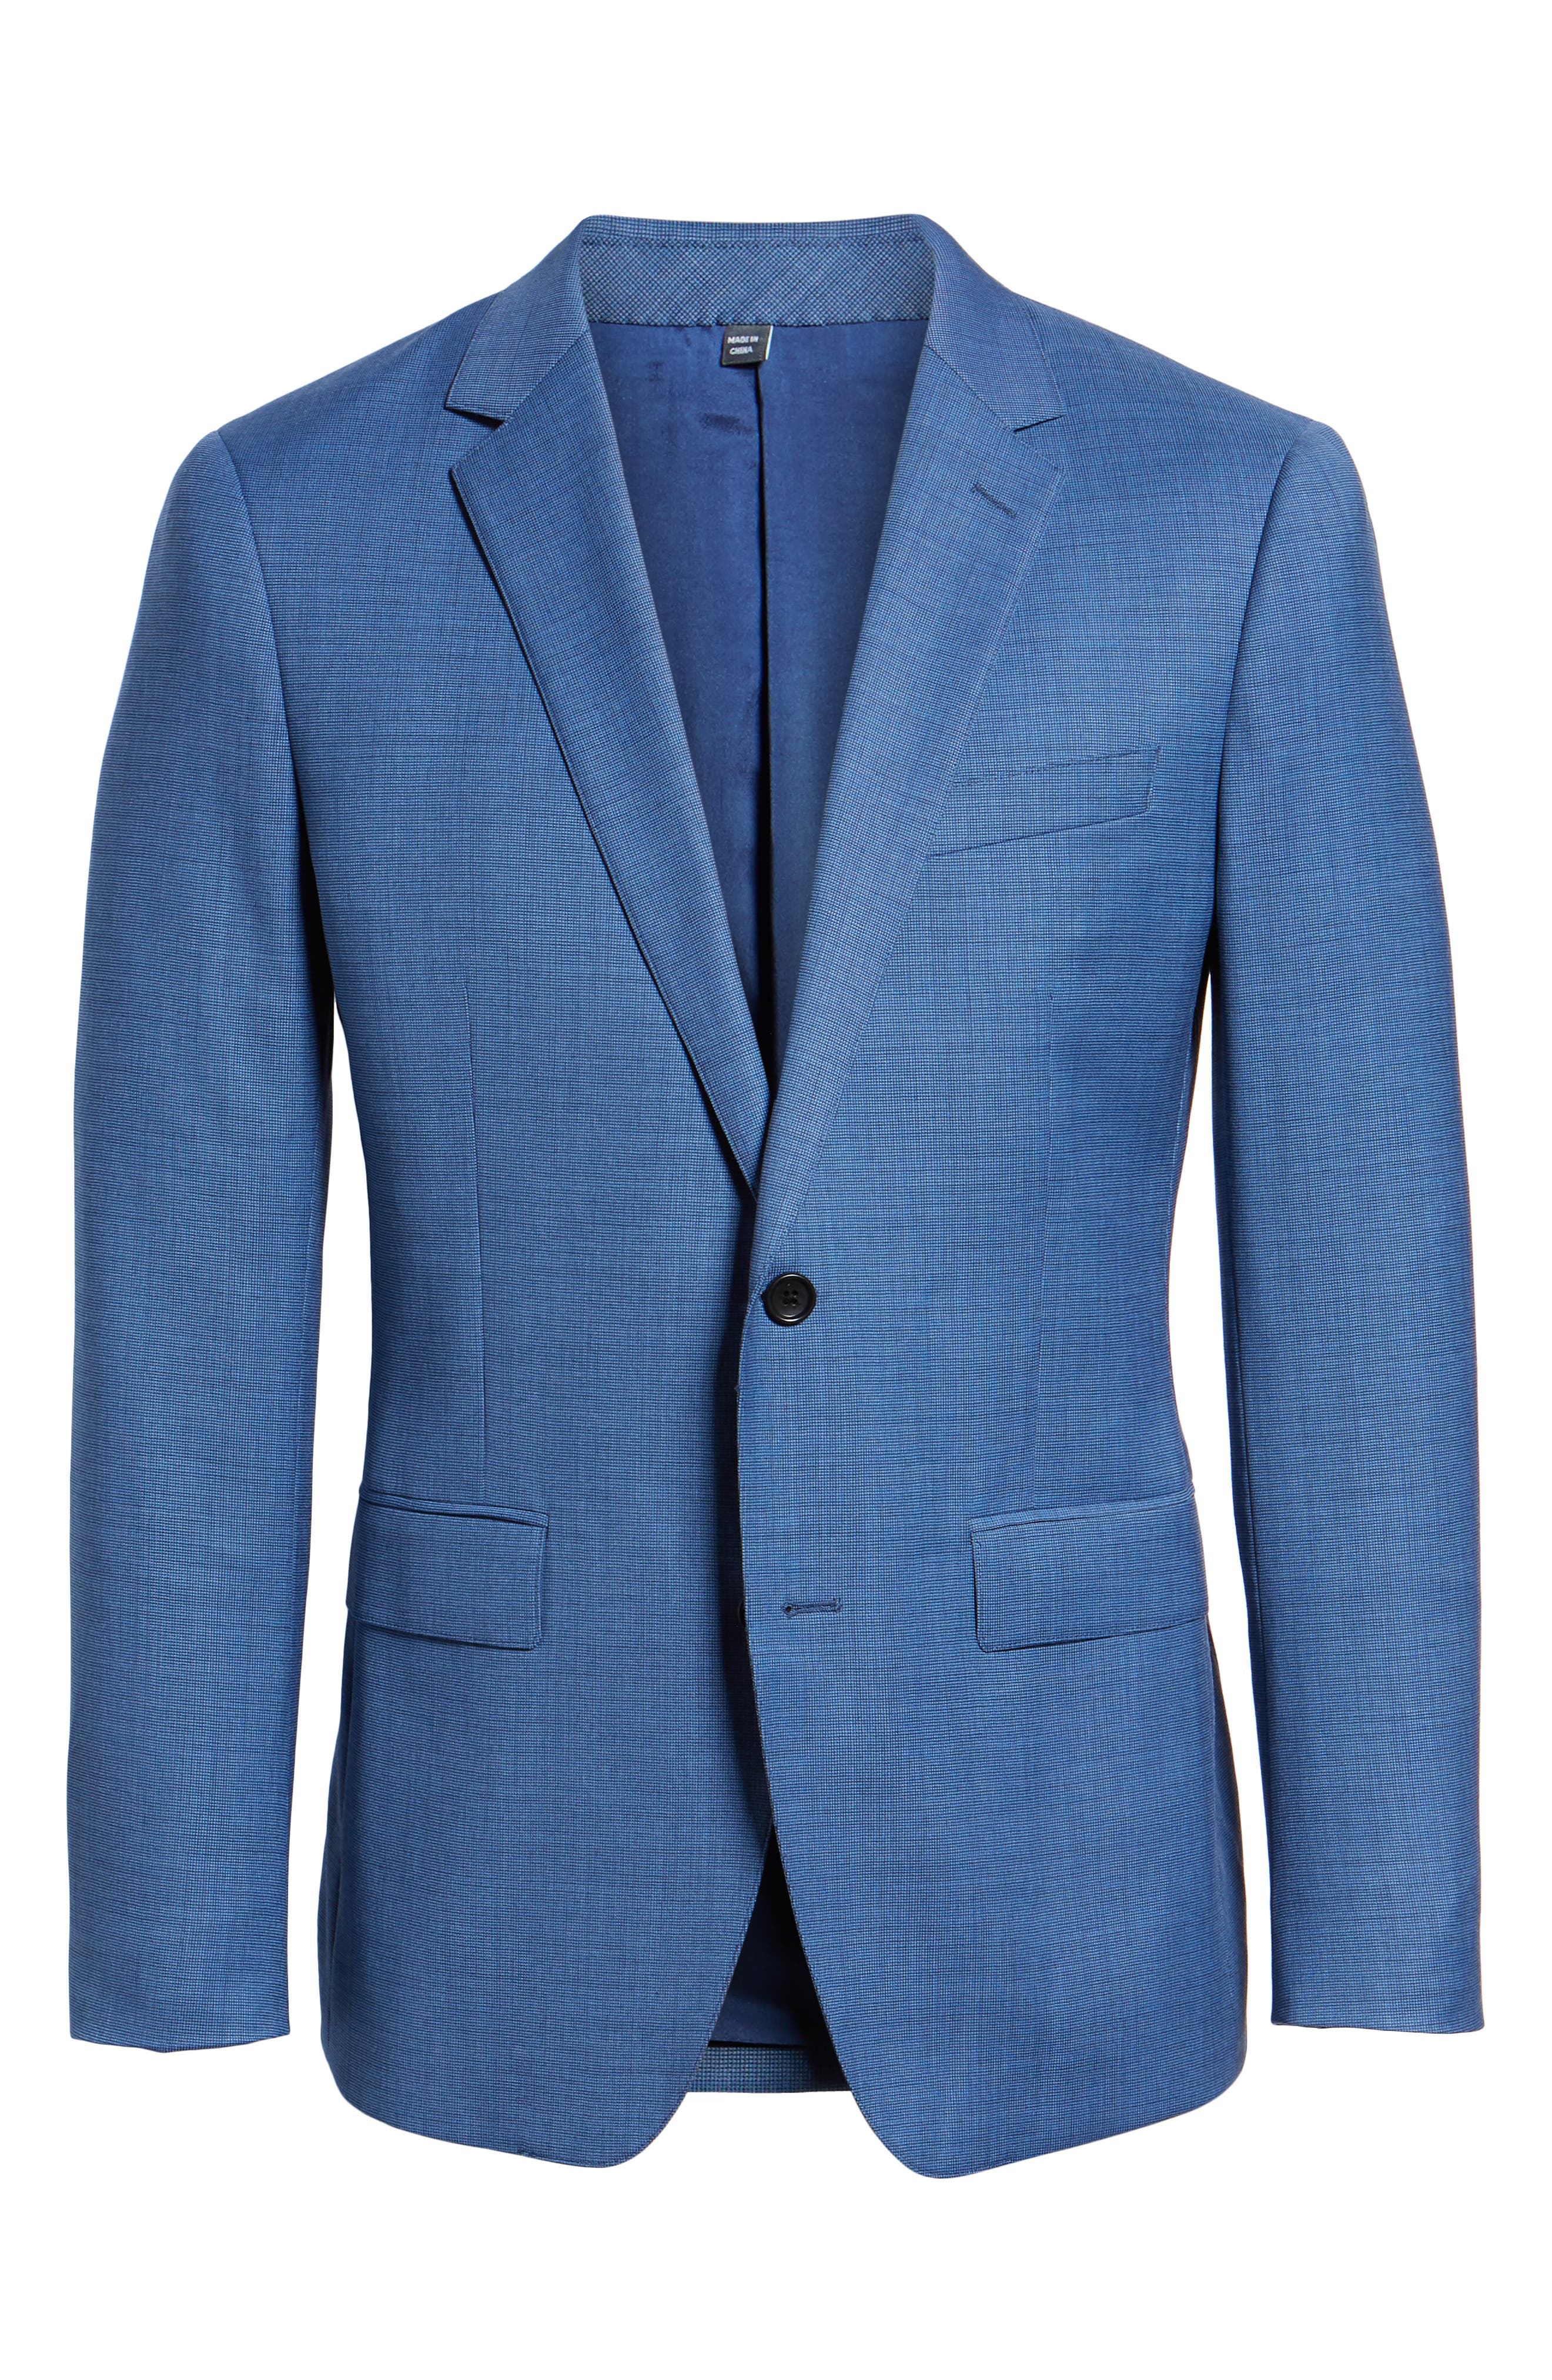 Jetsetter Trim Fit Stretch Solid Wool Suit Jacket,                             Alternate thumbnail 5, color,                             BRIGHTER BLUE